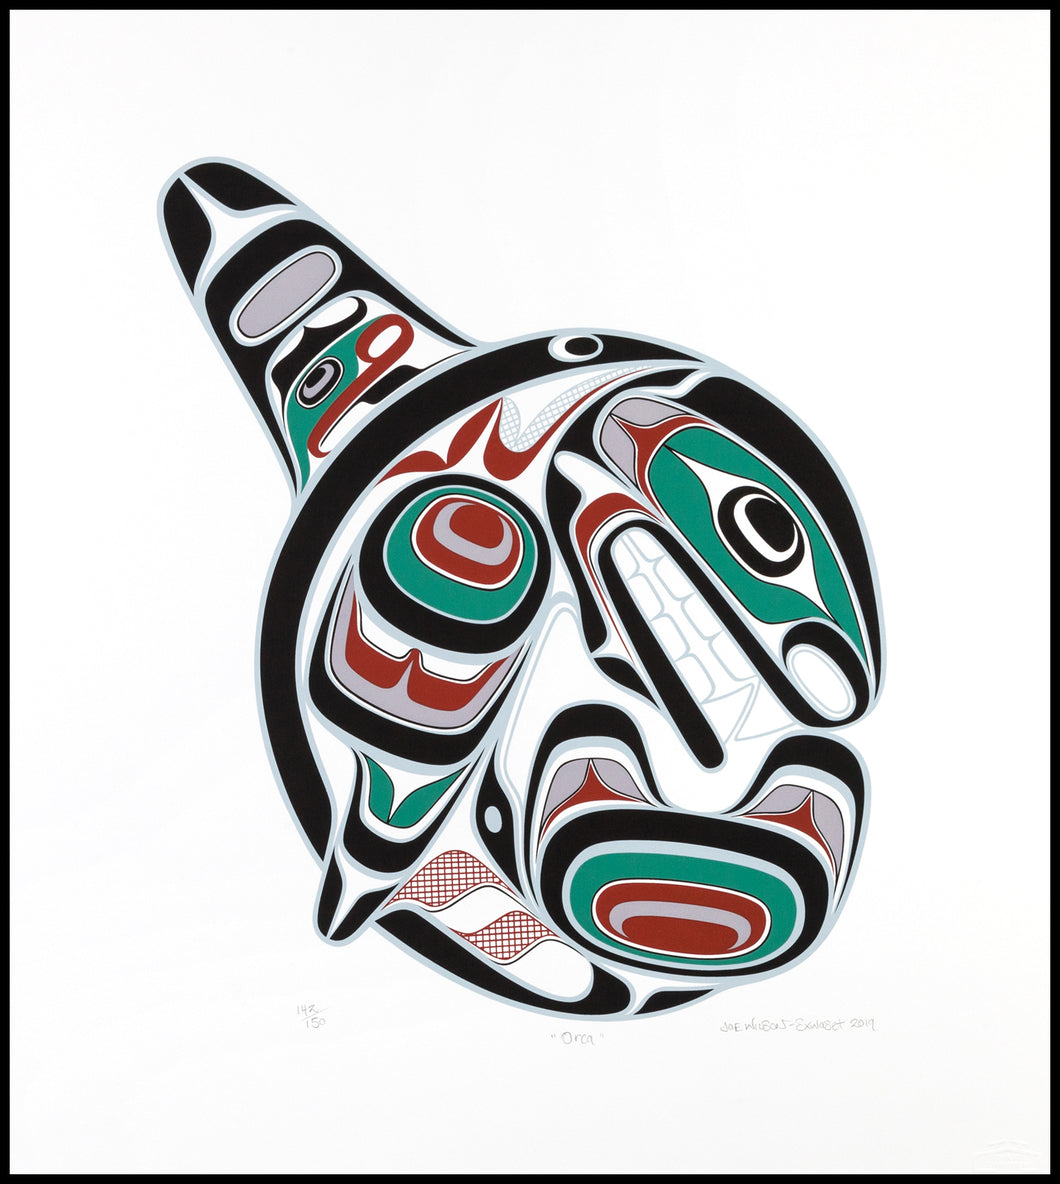 Orca by Joe Wilson, Kwakwaka'wakw